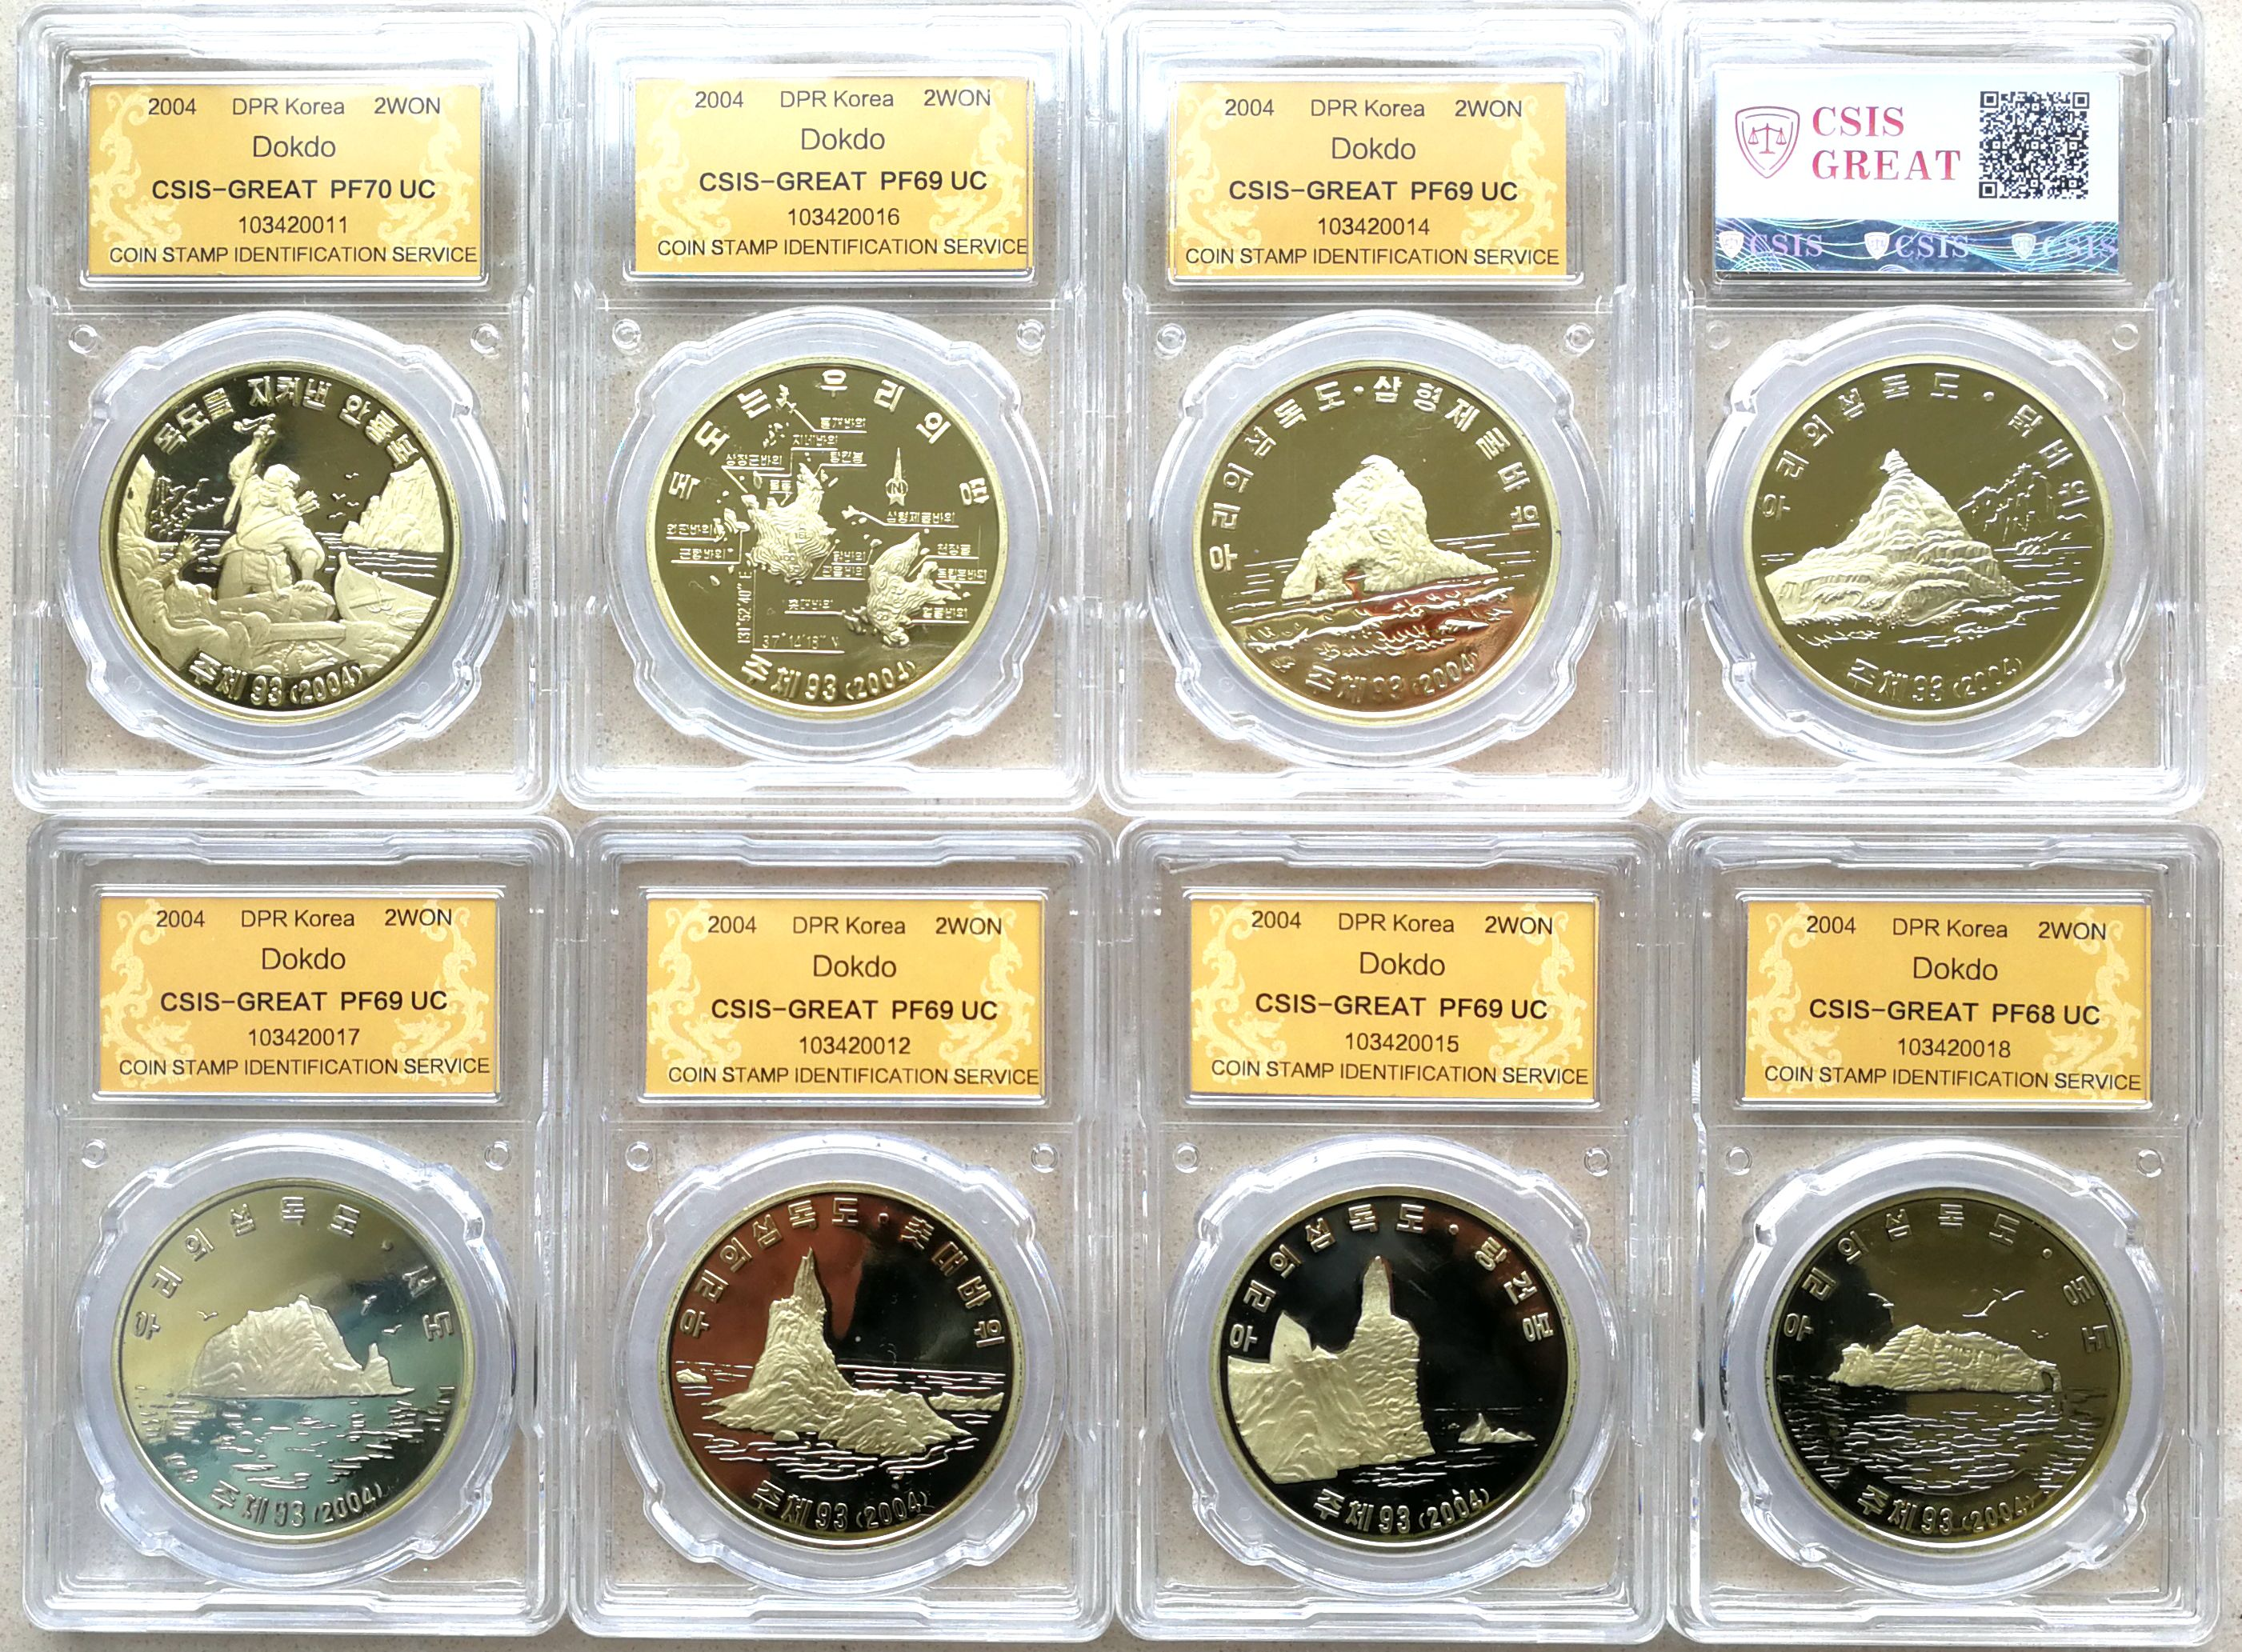 "L3097, Korea ""Dokdo Islands (Takeshima)"" Proof Coin, 8 Pcs Brass, 2004"